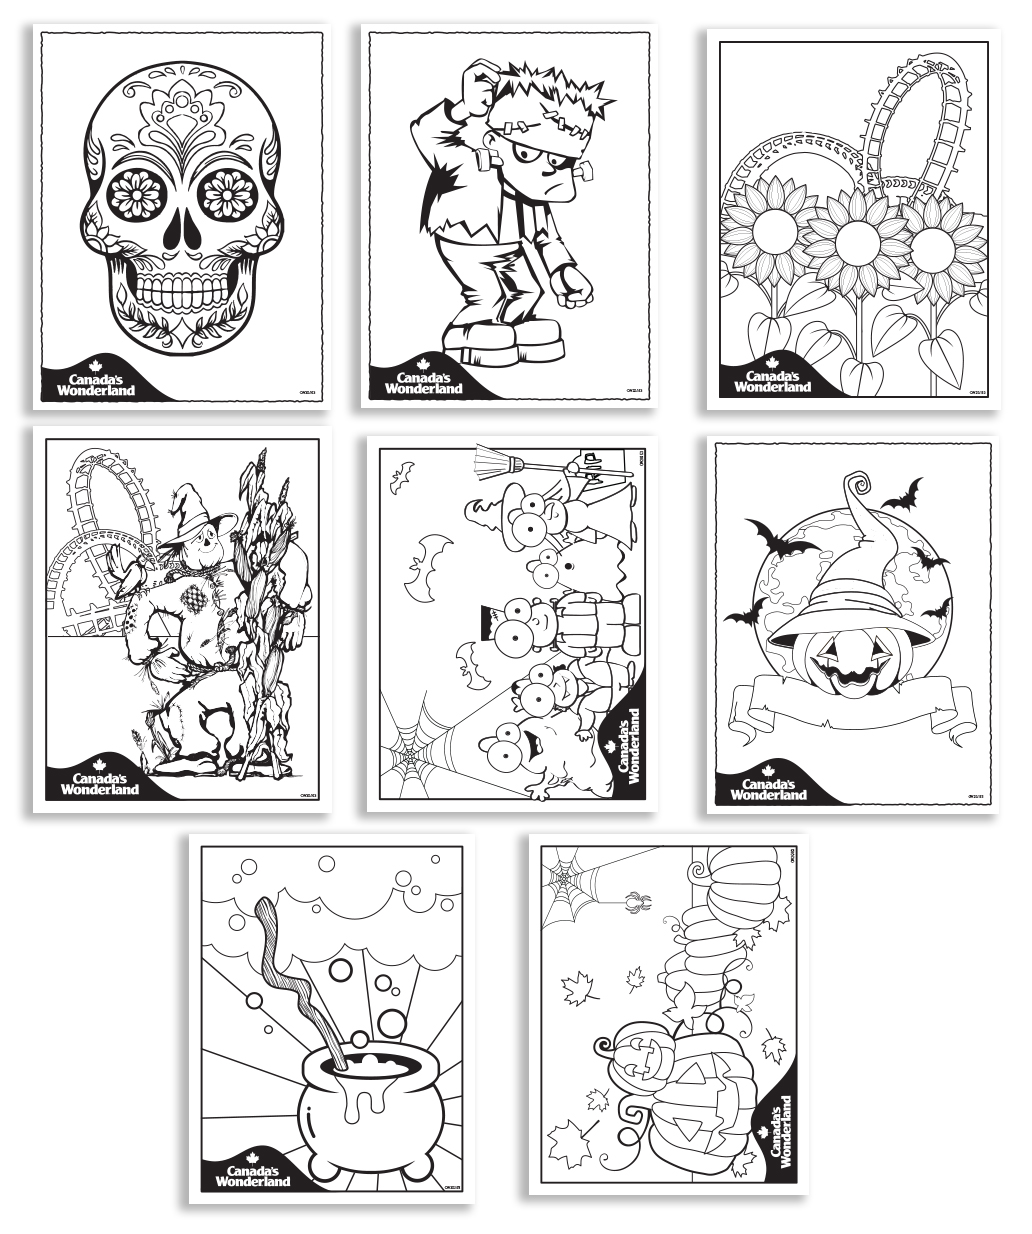 Canada's Wonderland Colouring Sheets